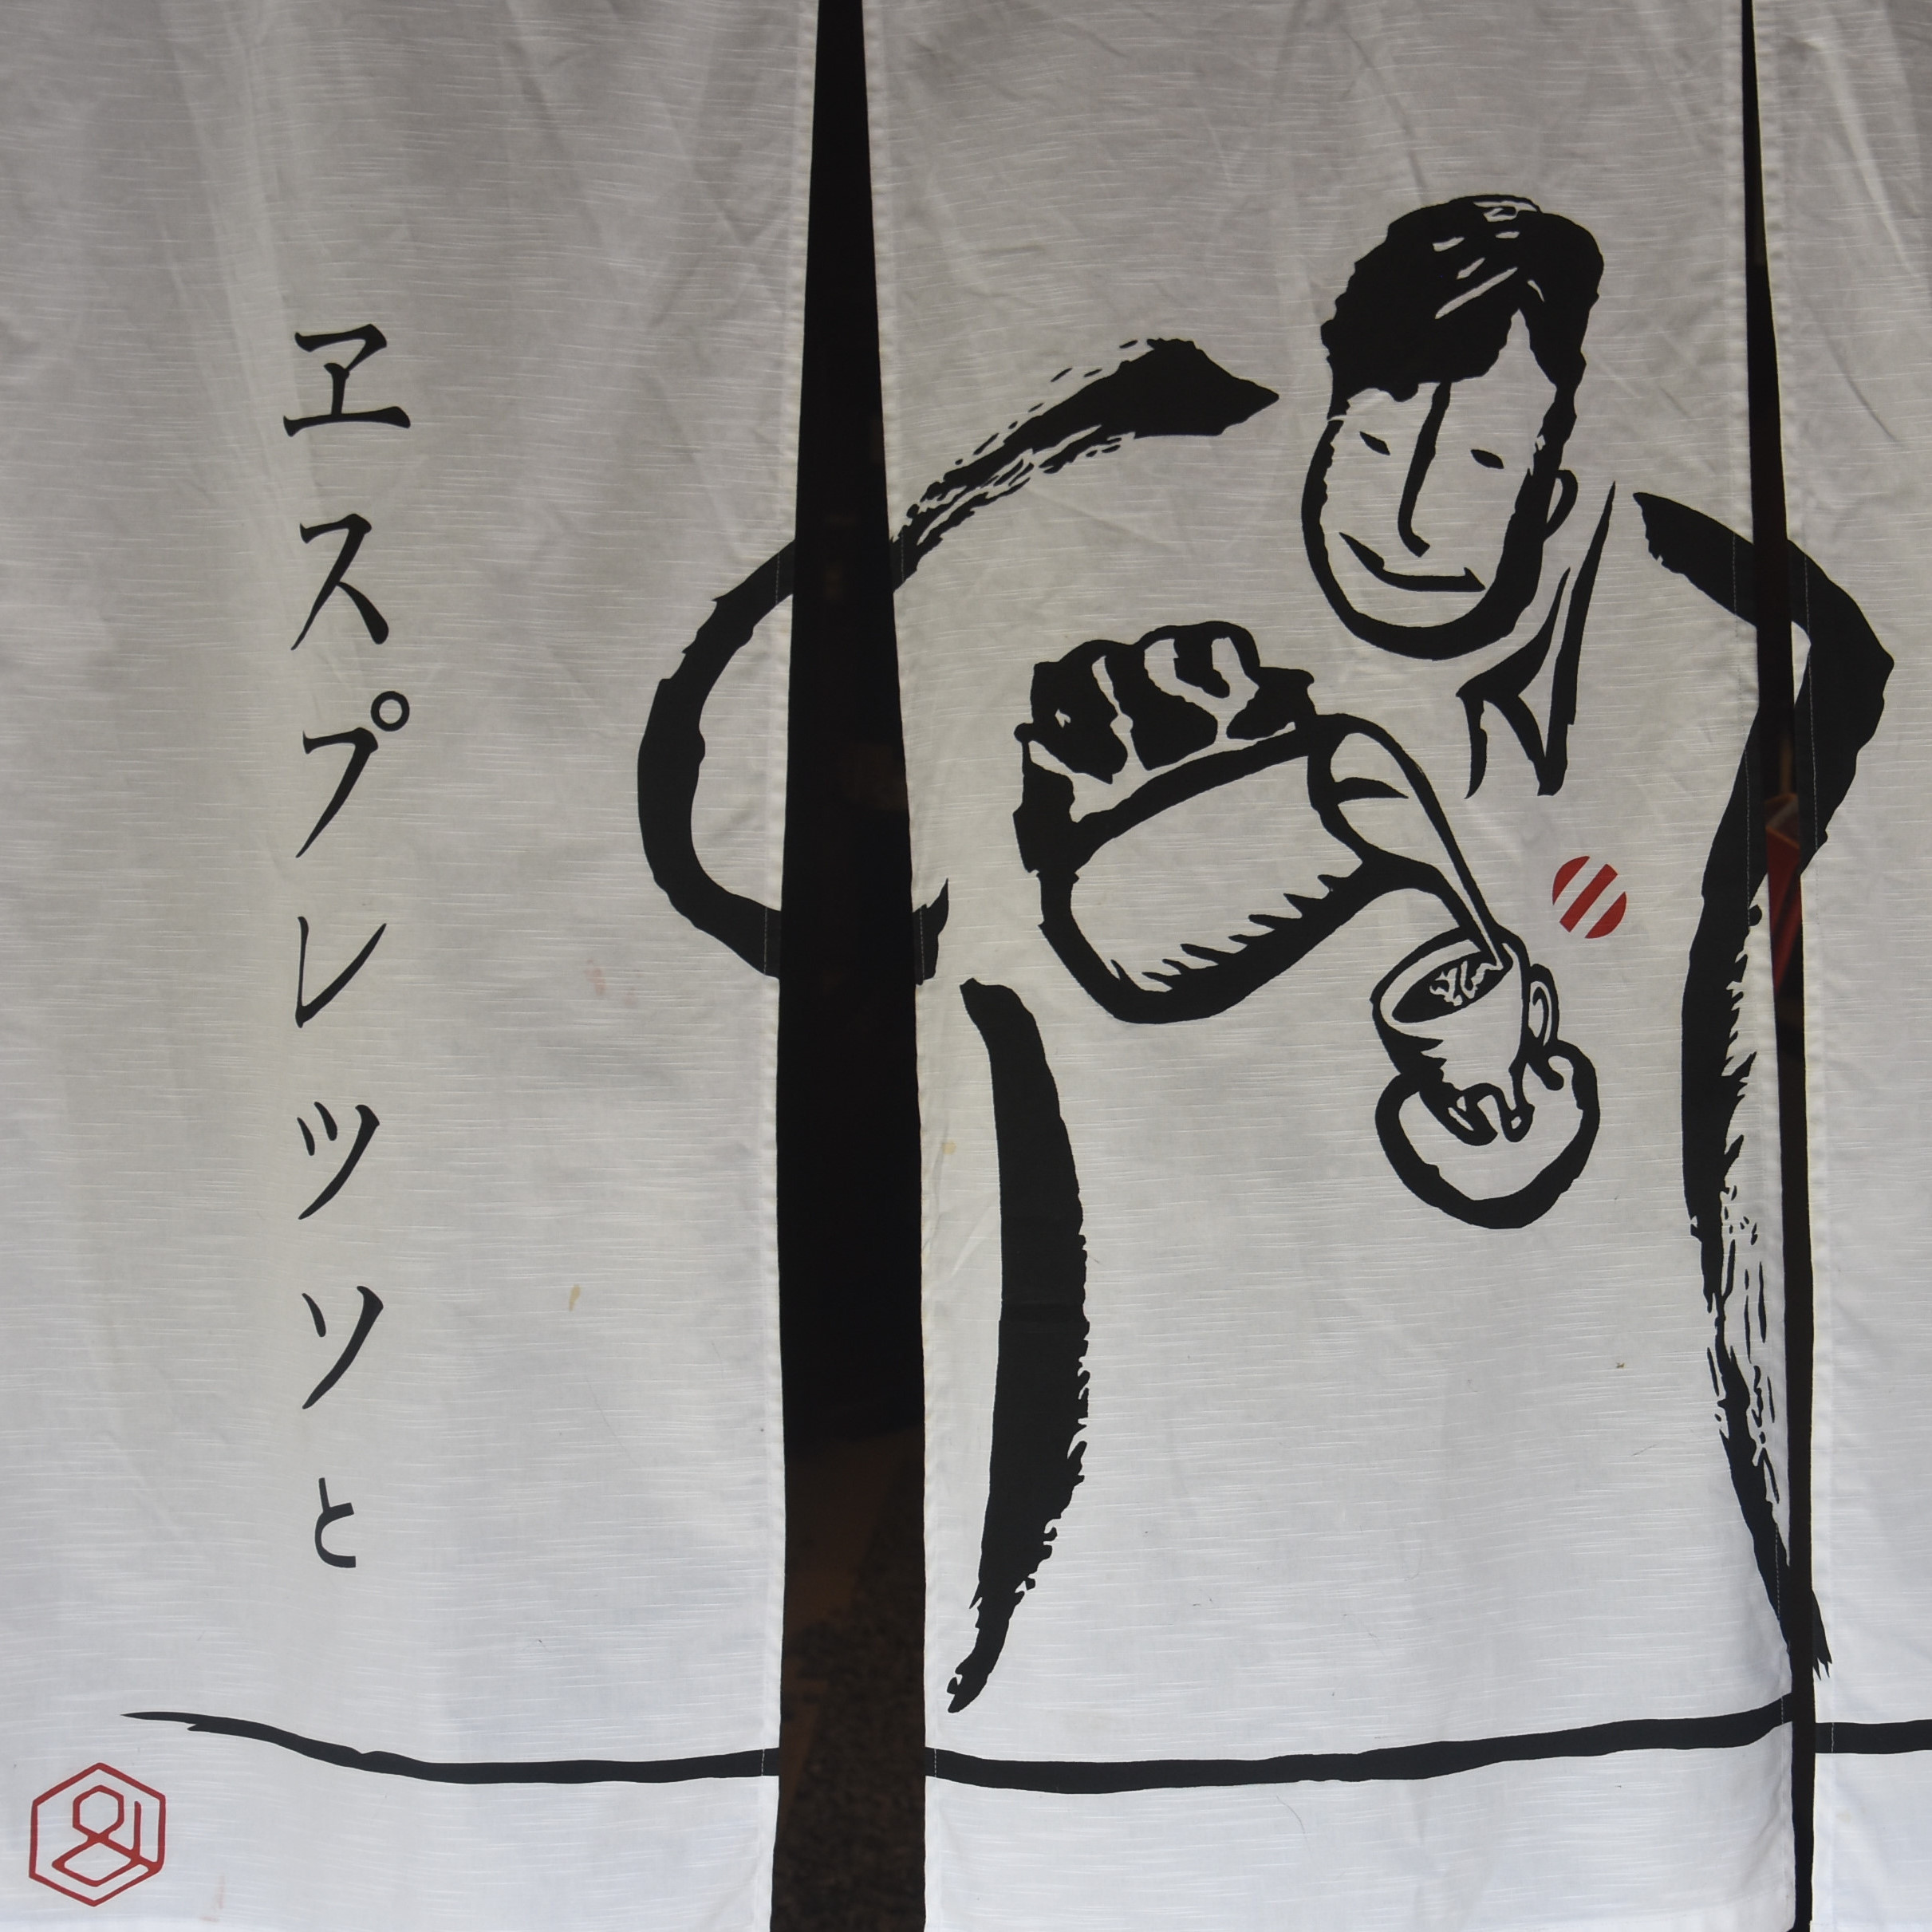 Details from the curtains hanging in the door of Bread, Espresso & Arashiyama Garden, Kyoto, showing a man pouring latte art.